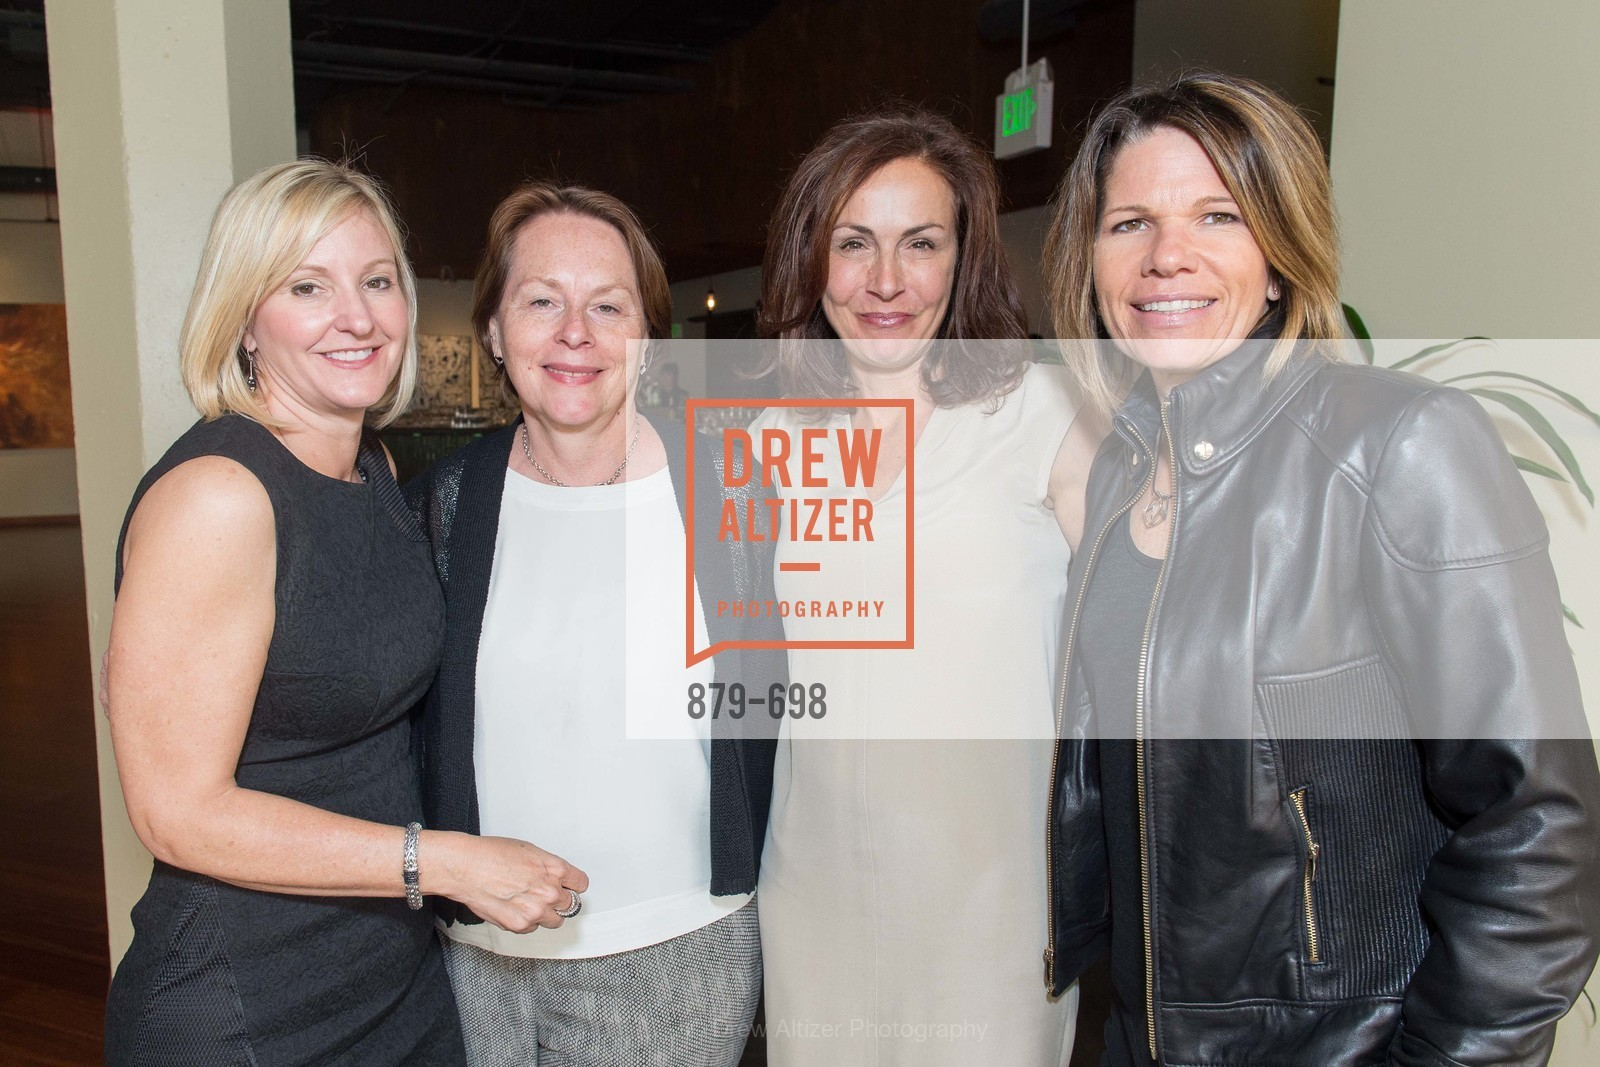 Monica Rutherford, Joanne Meyer, Kim Miller, Jackie Duda, EWG's 6th Annual Earth Dinner, US, May 6th, 2015,Drew Altizer, Drew Altizer Photography, full-service agency, private events, San Francisco photographer, photographer california